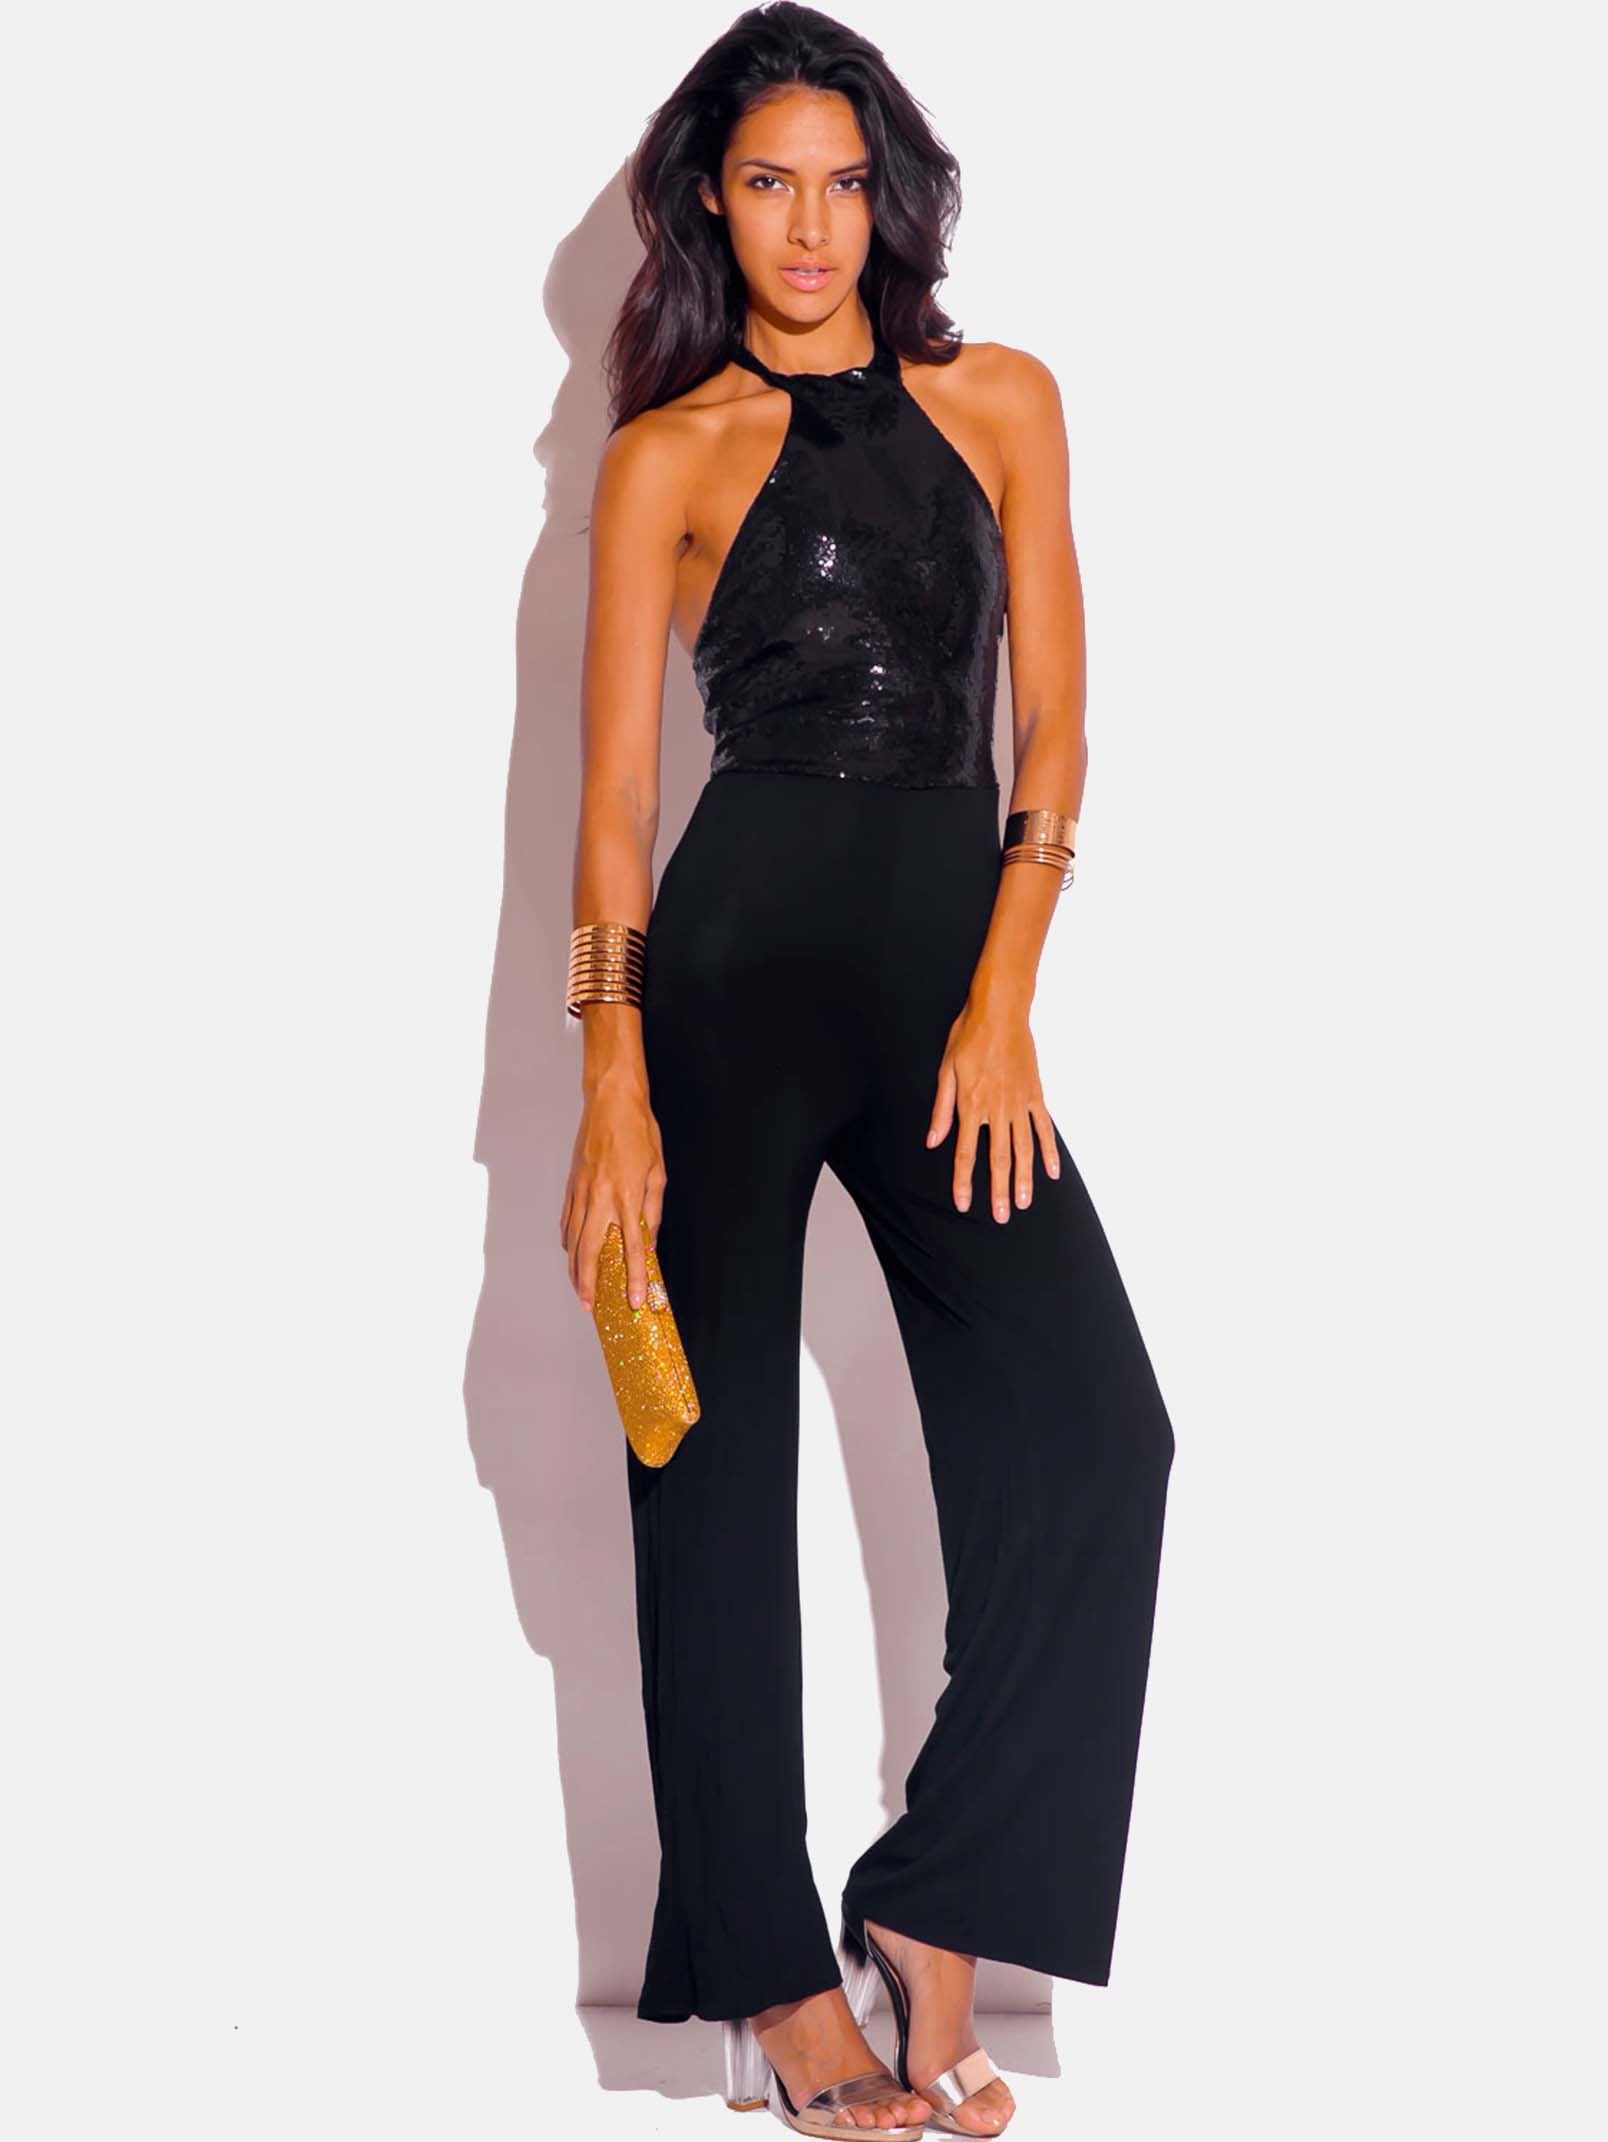 Feb 12,  · jumpsuit outfits Indo western dress party wear jumpsuit new jumpsuit collection latest jumpsuit collection beautiful new jumpsuit jumpsuit for wedding jumpsuit style ideas beautiful new style dress.